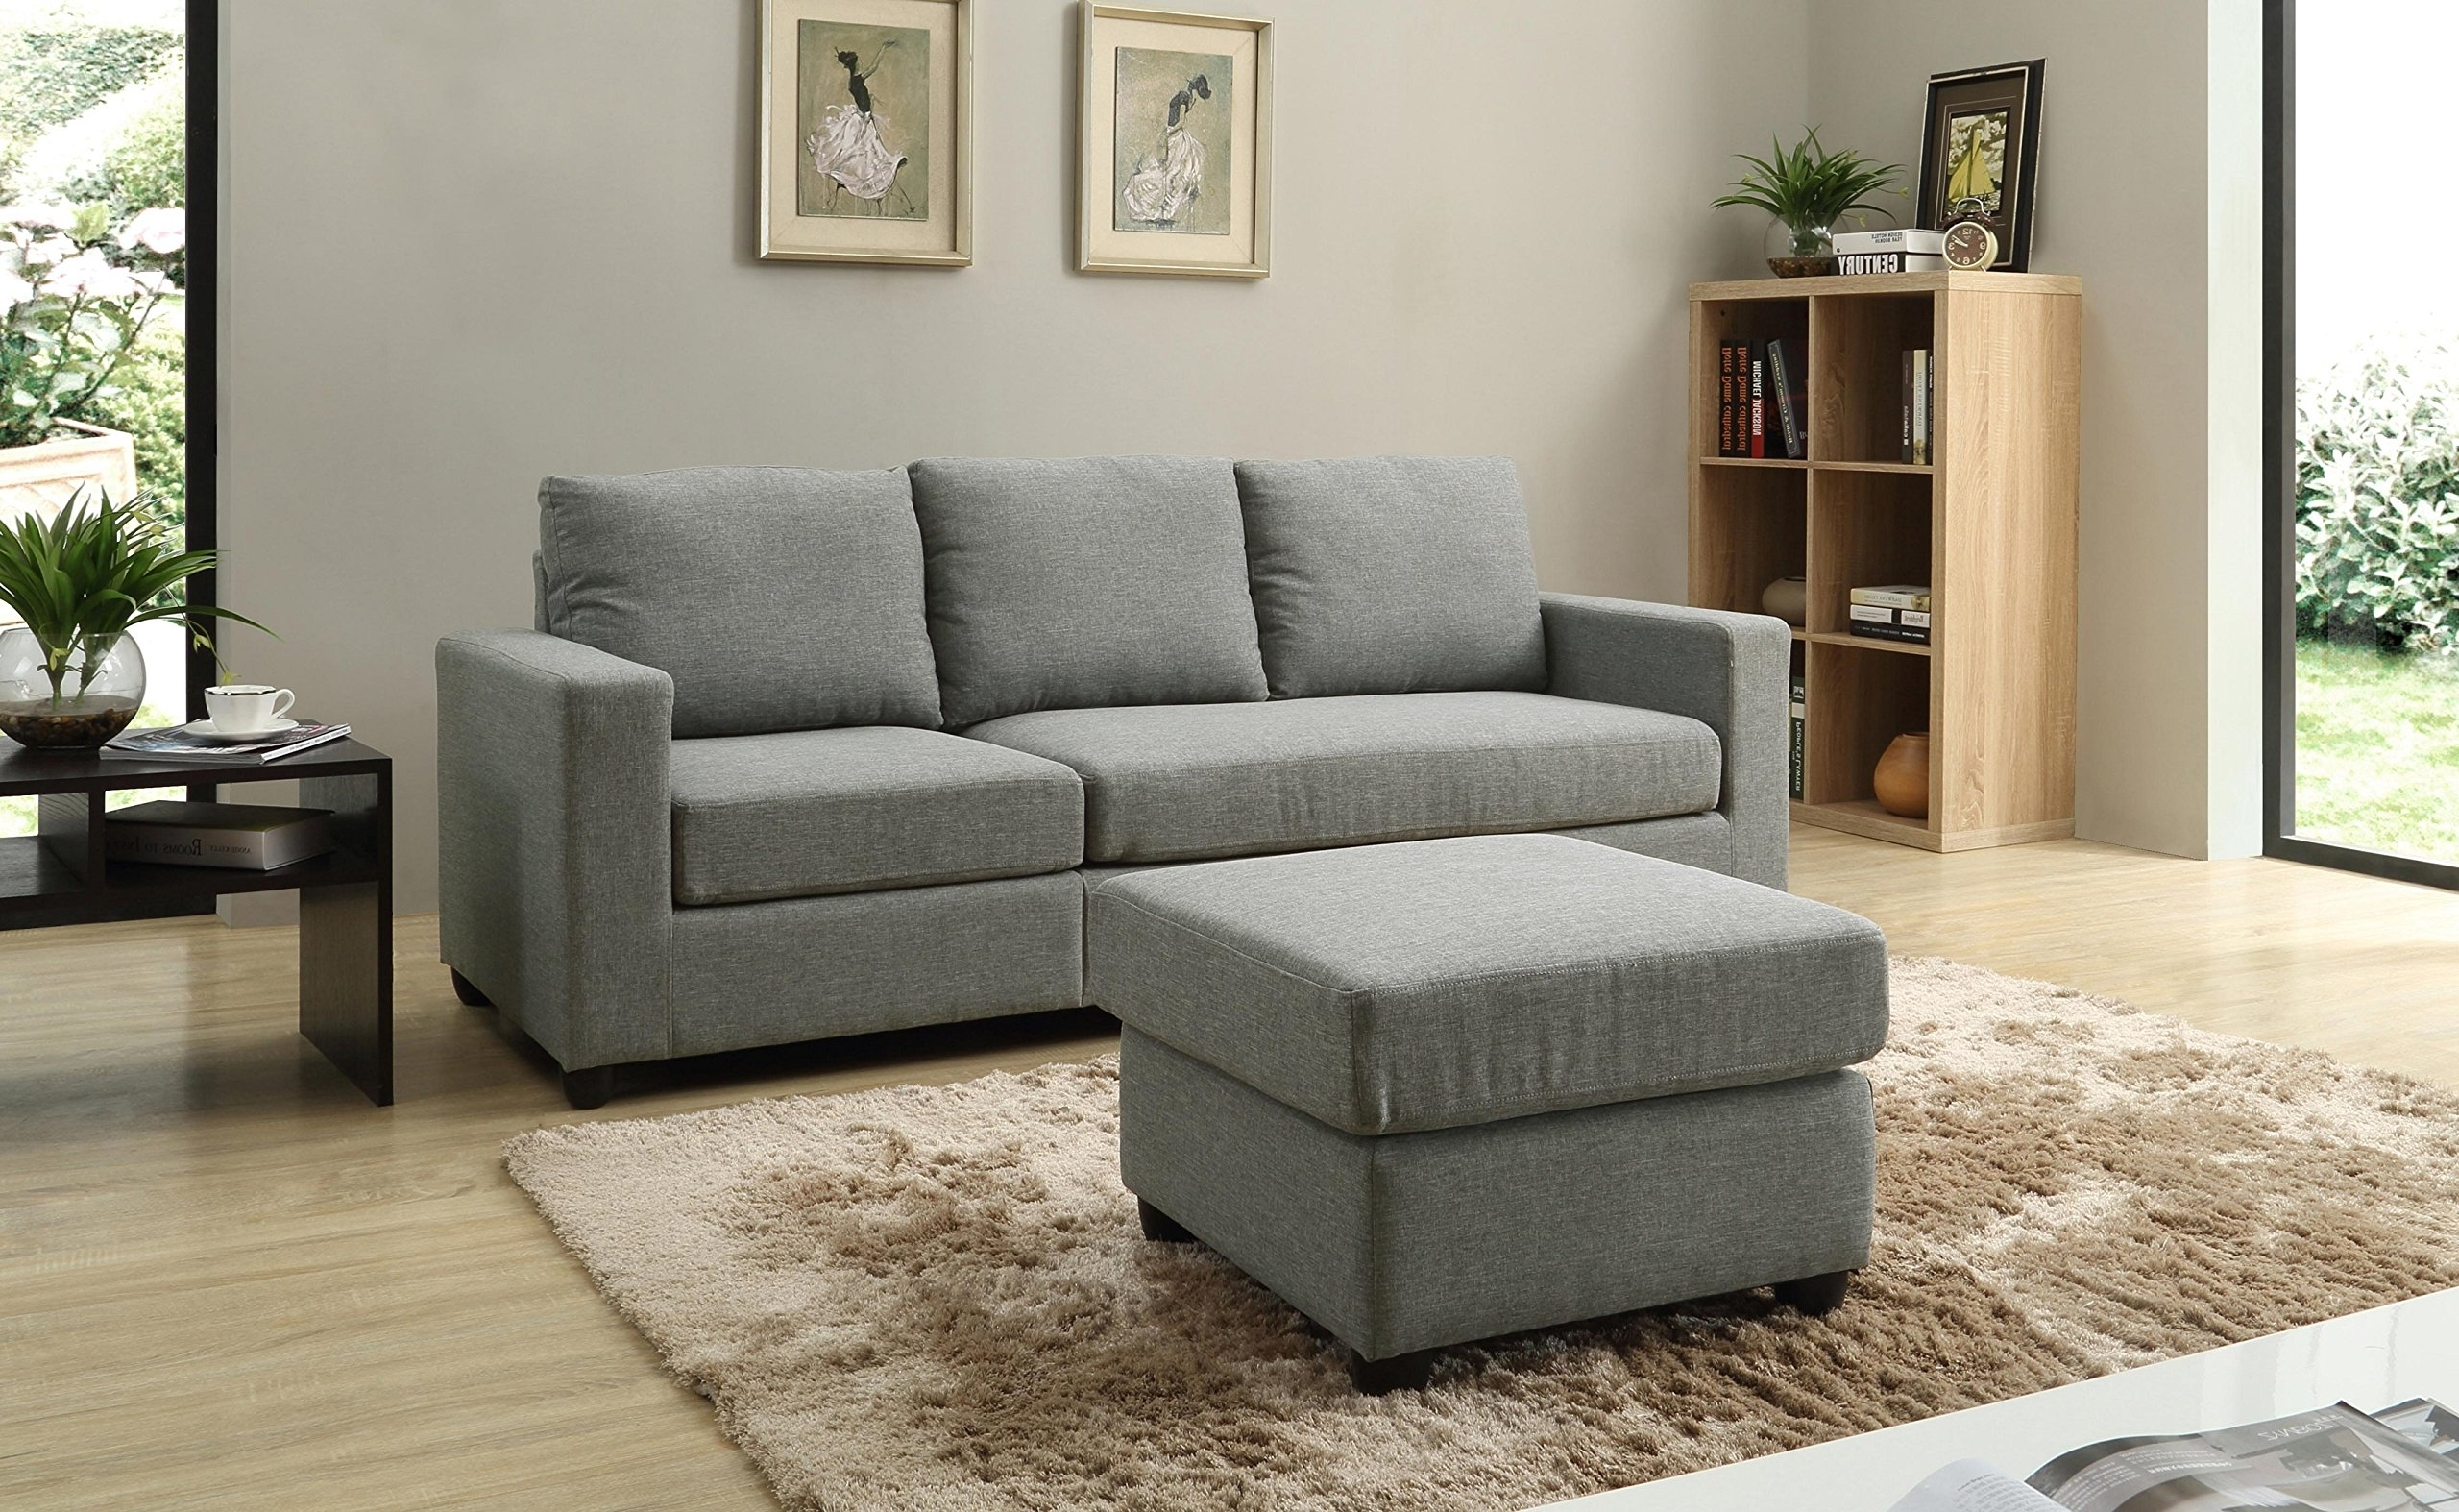 Well Liked Nhi Express Alexandra Convertible Sectional Sofa, Grey (View 7 of 15)